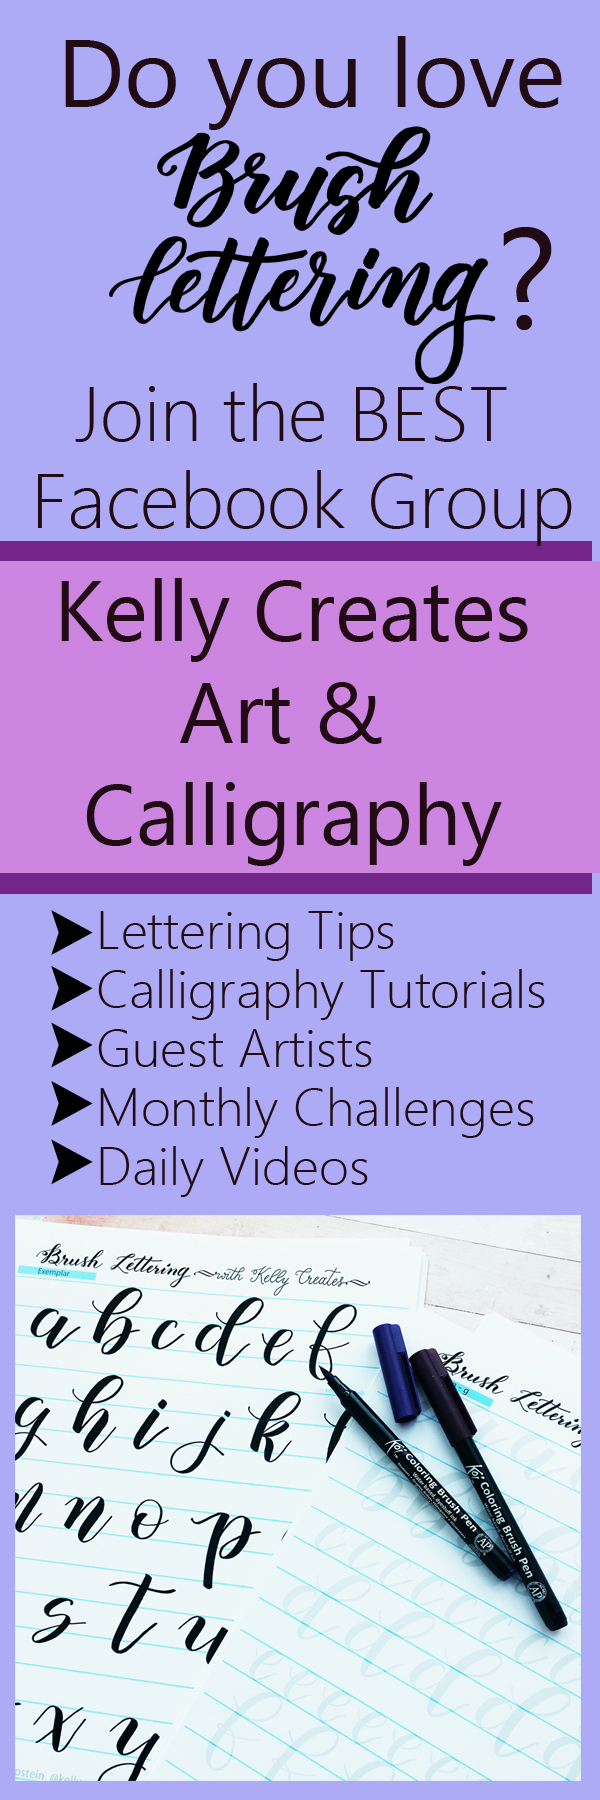 I found the best Facebook group for calligraphy and lettering! So friendly and inspiring and TONS of helpful tutorials and videos Kelly Creates Art & Calligraphy